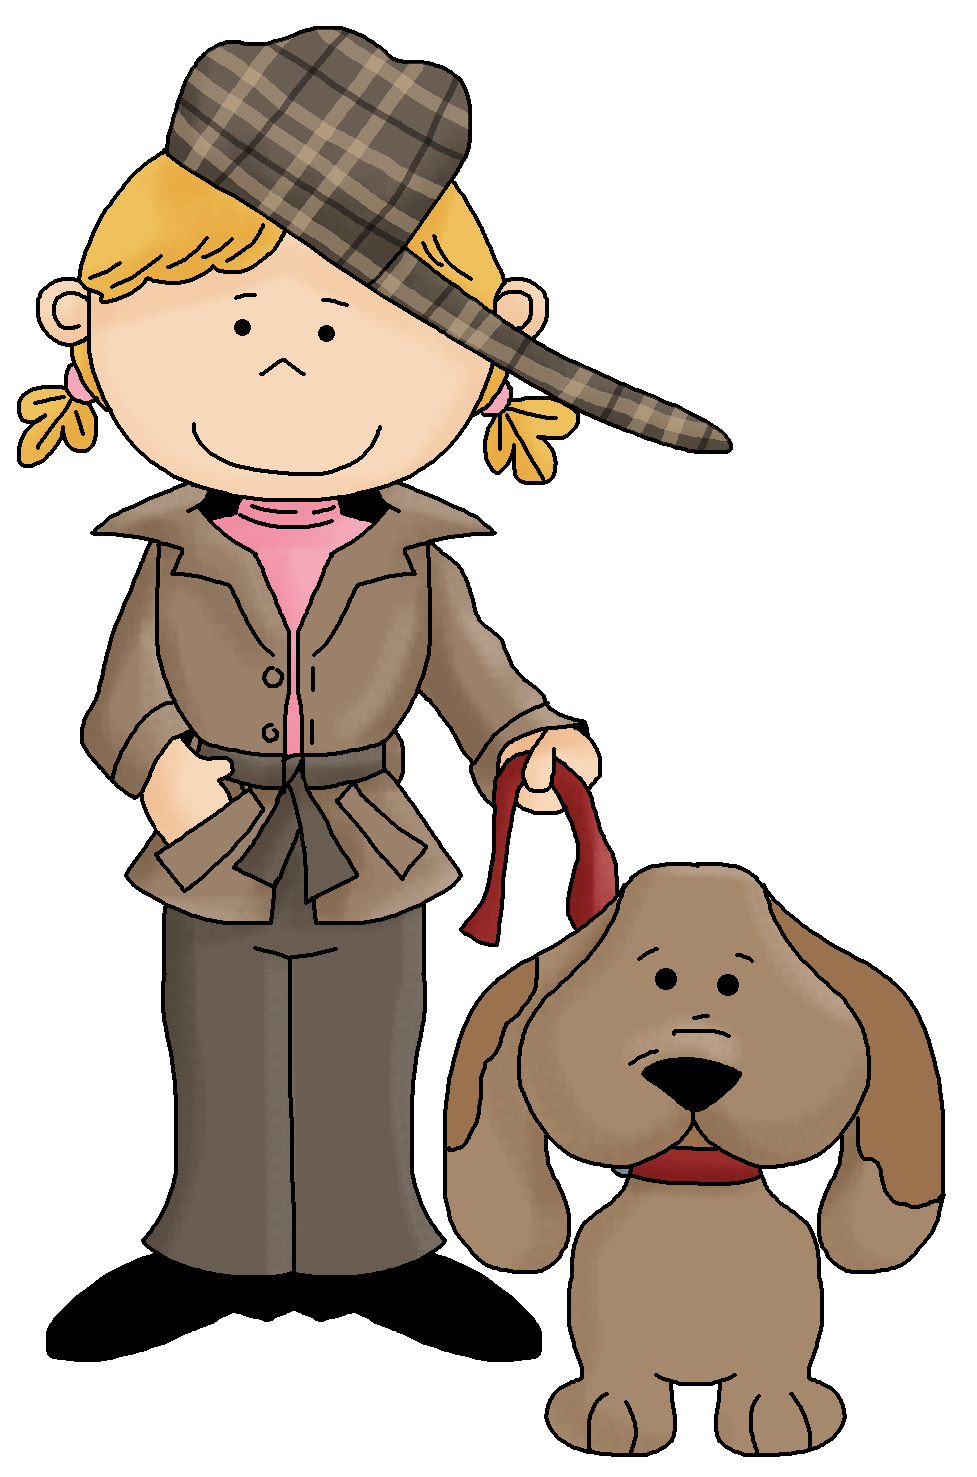 Kid detective clipart clipart royalty free stock Kid detective clipart free images 2 - Cliparting.com clipart royalty free stock